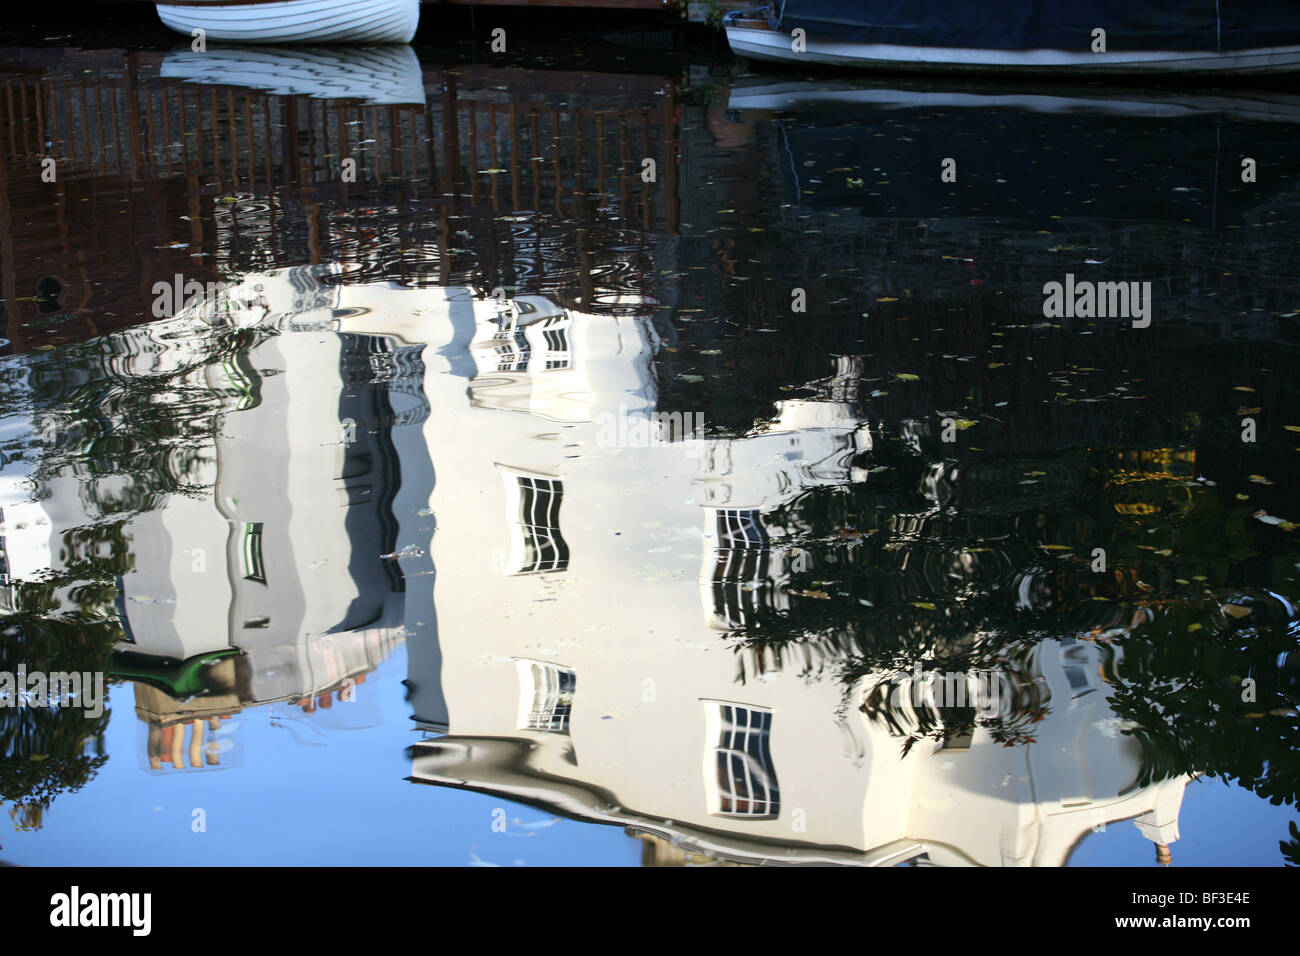 House reflected Regents canal London - Stock Image